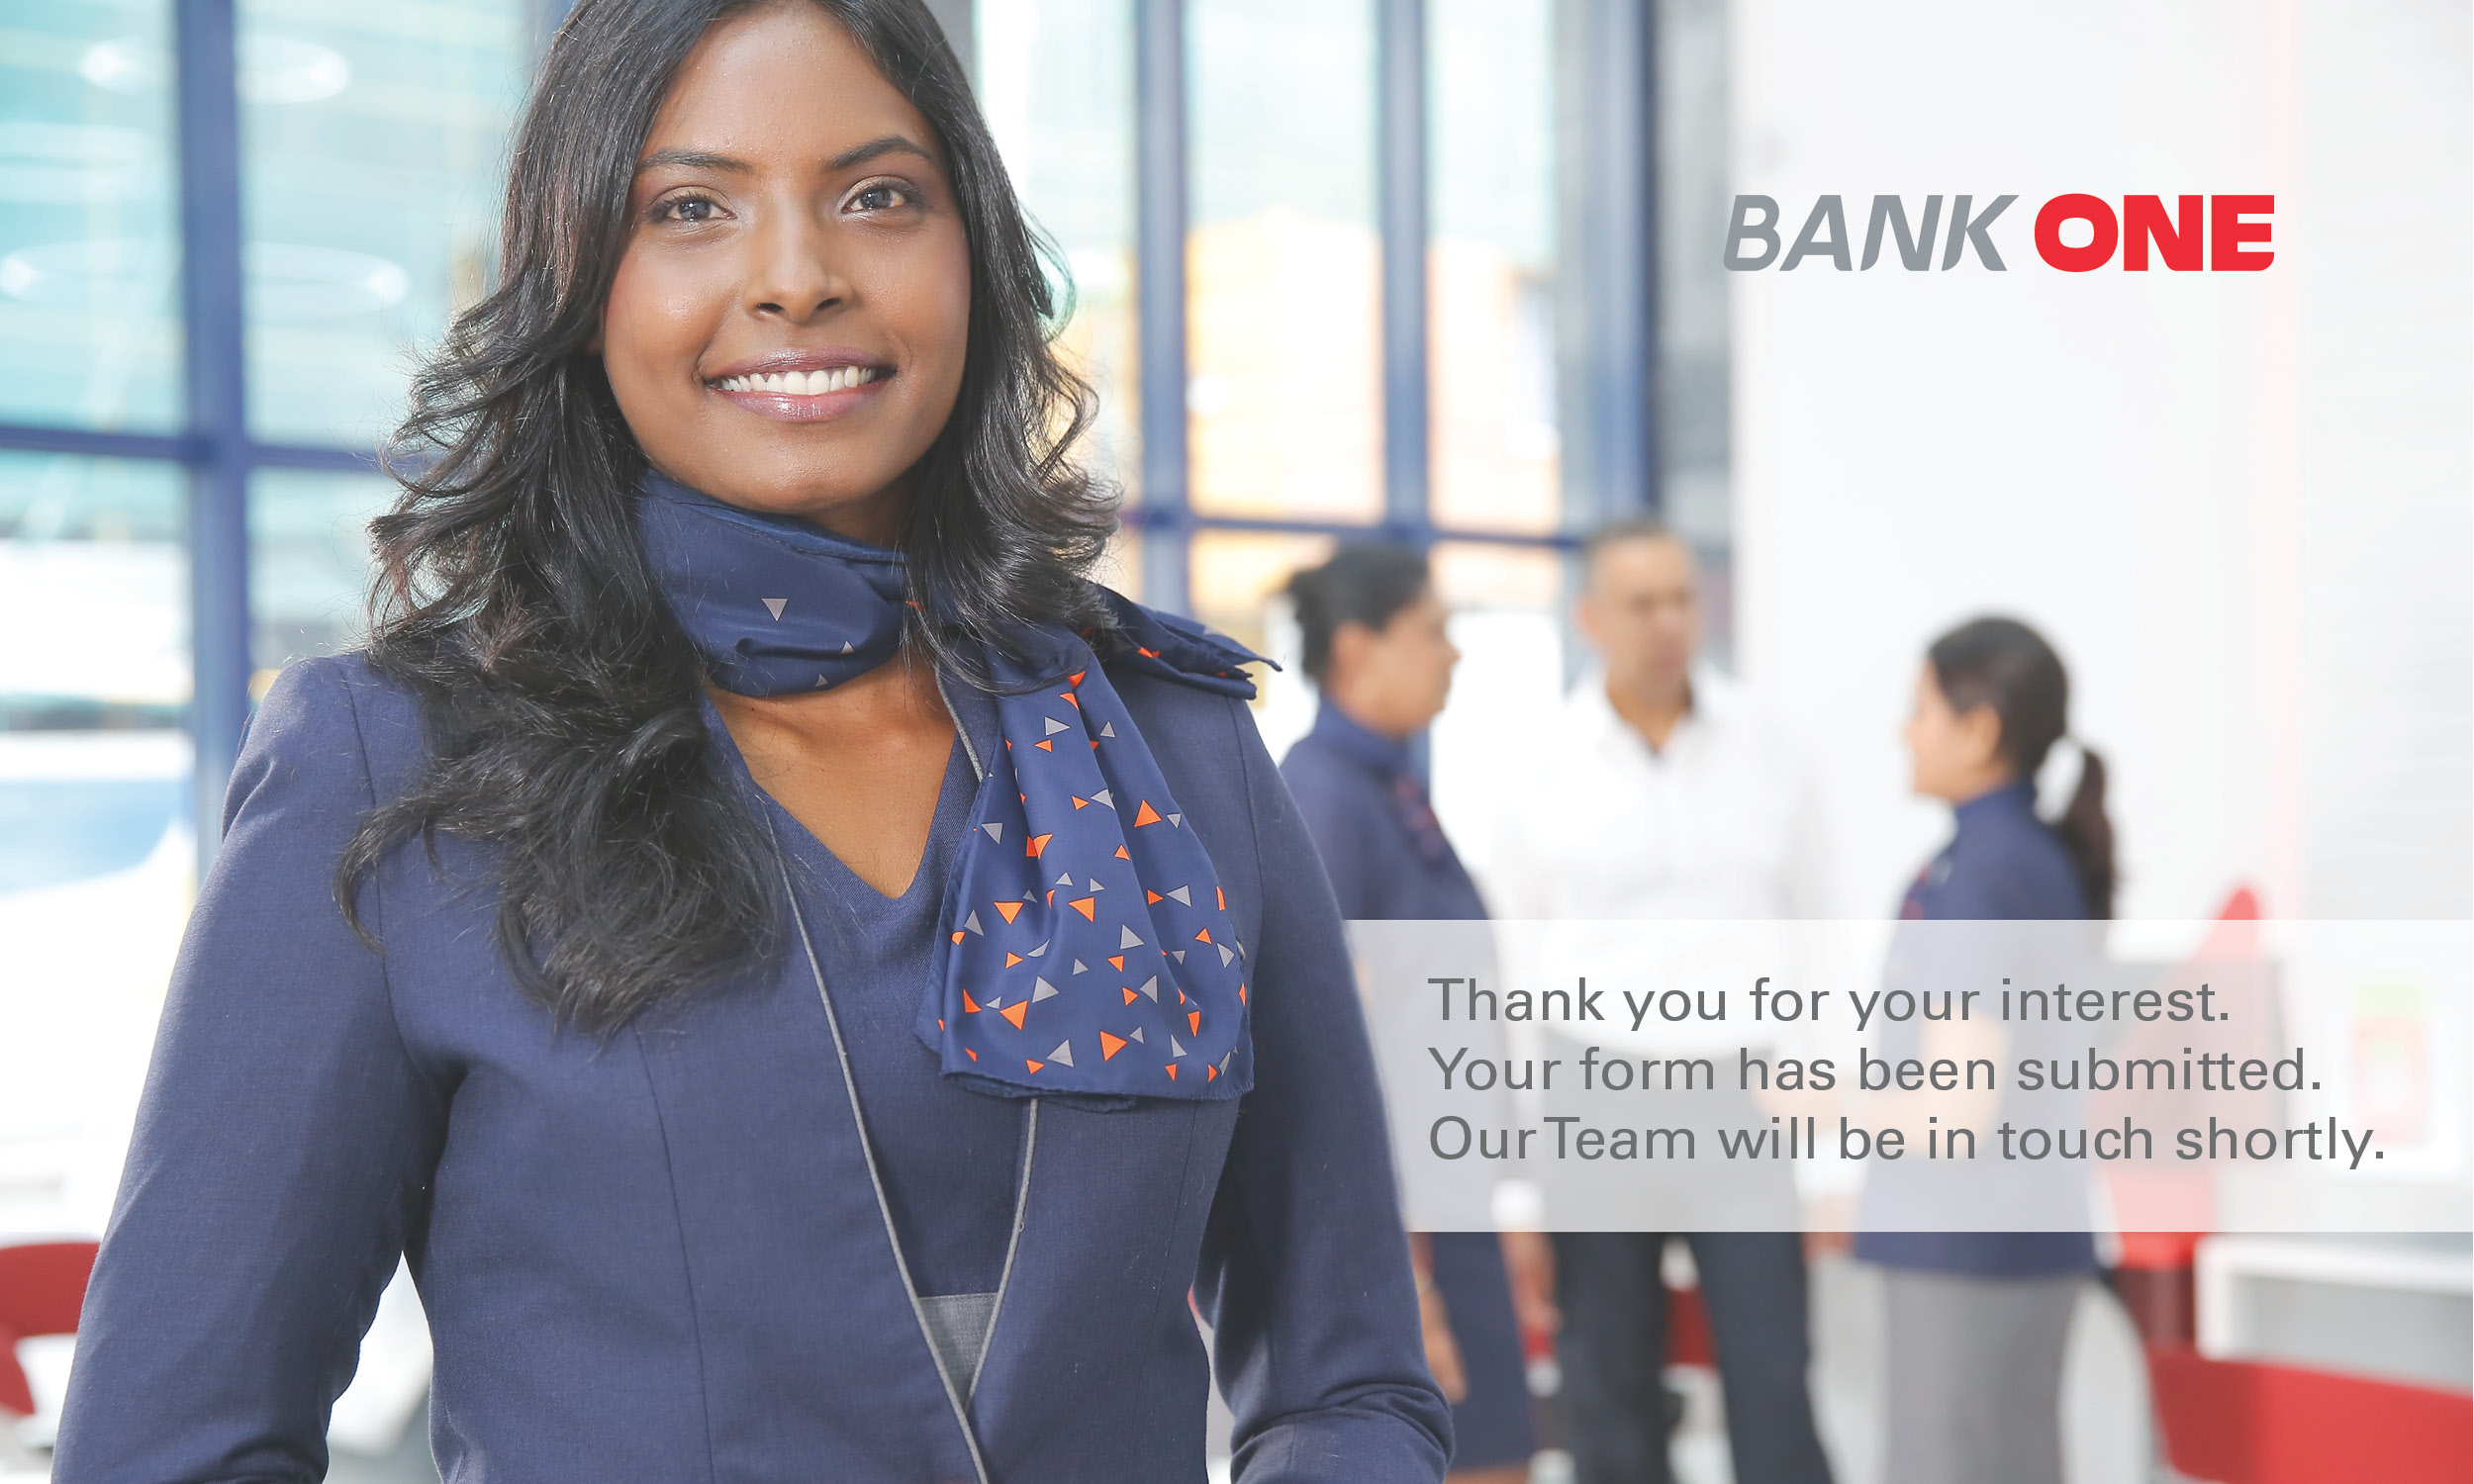 Customer Service Representative/Teller | Bank One Private